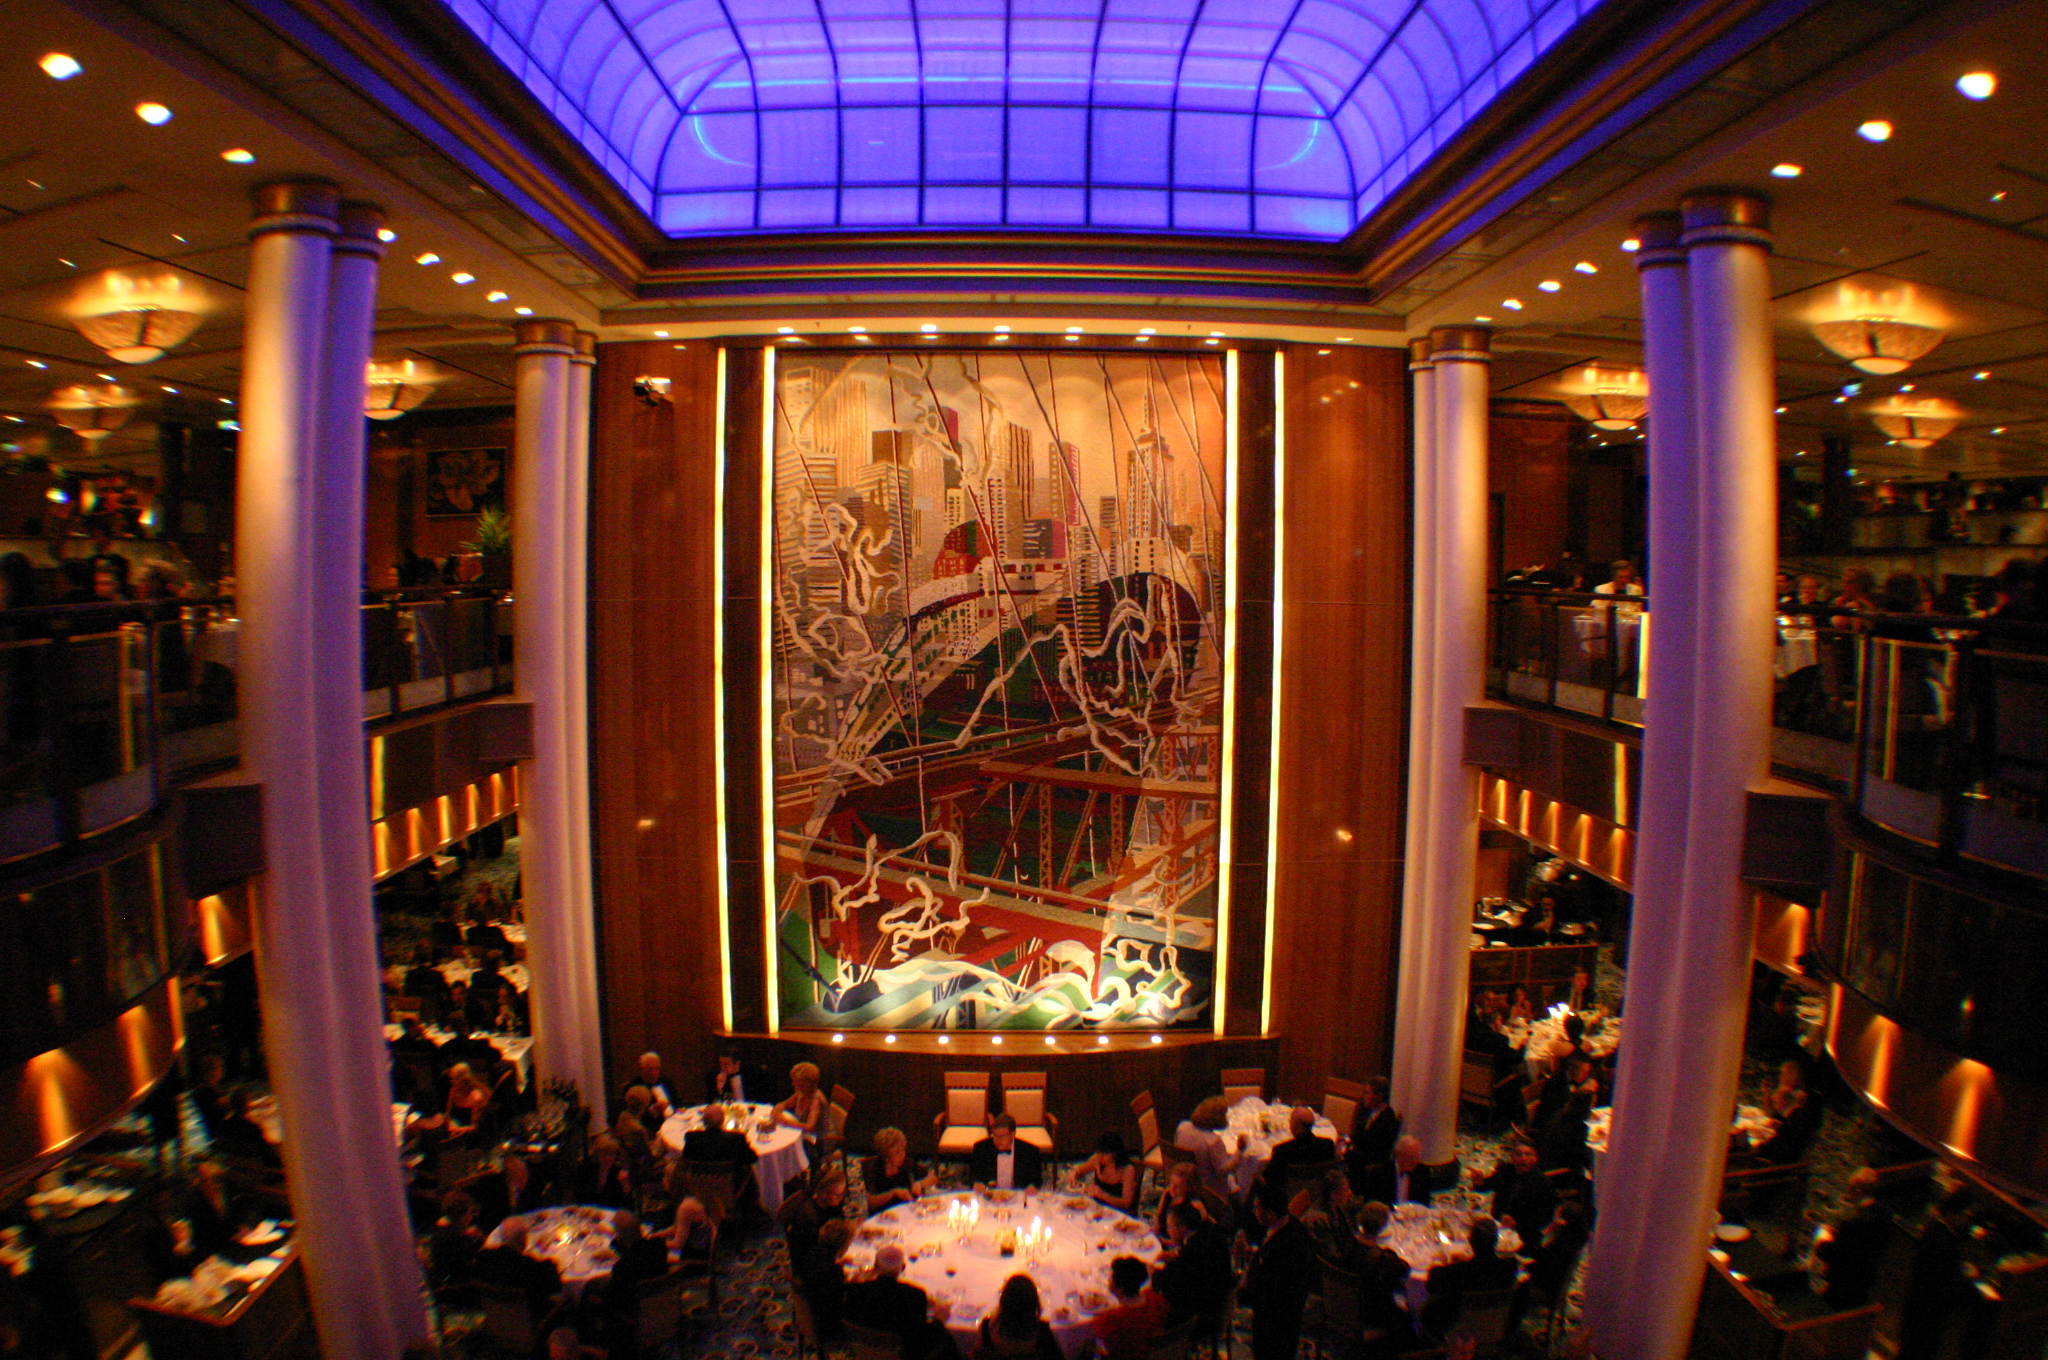 Brittannia restaurant, Queen Mary II